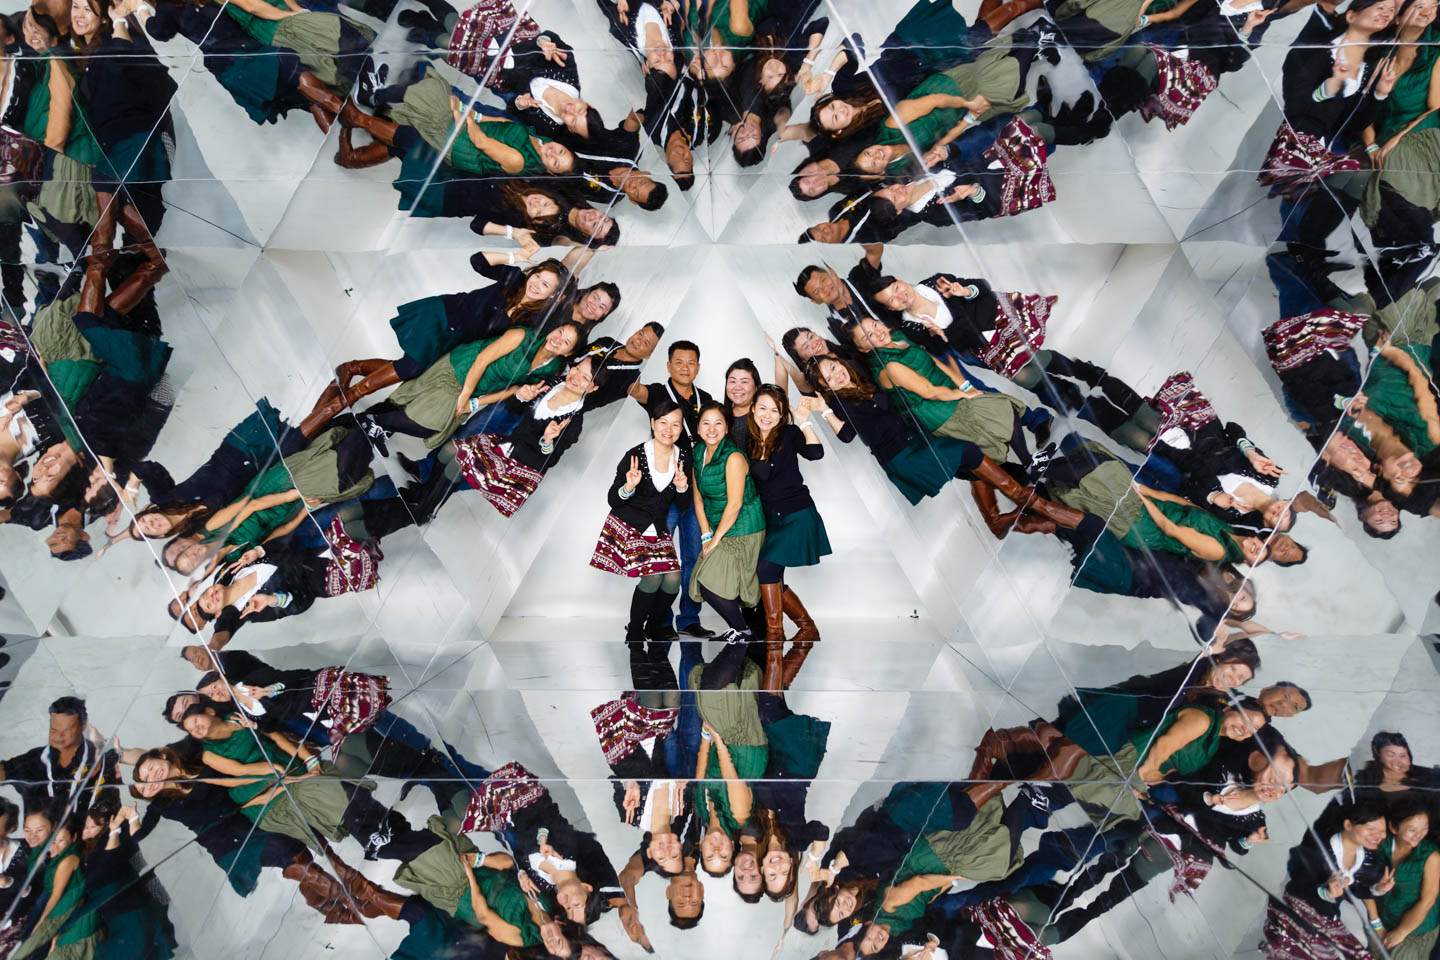 There were a number of photo booths including a kaleidoscope